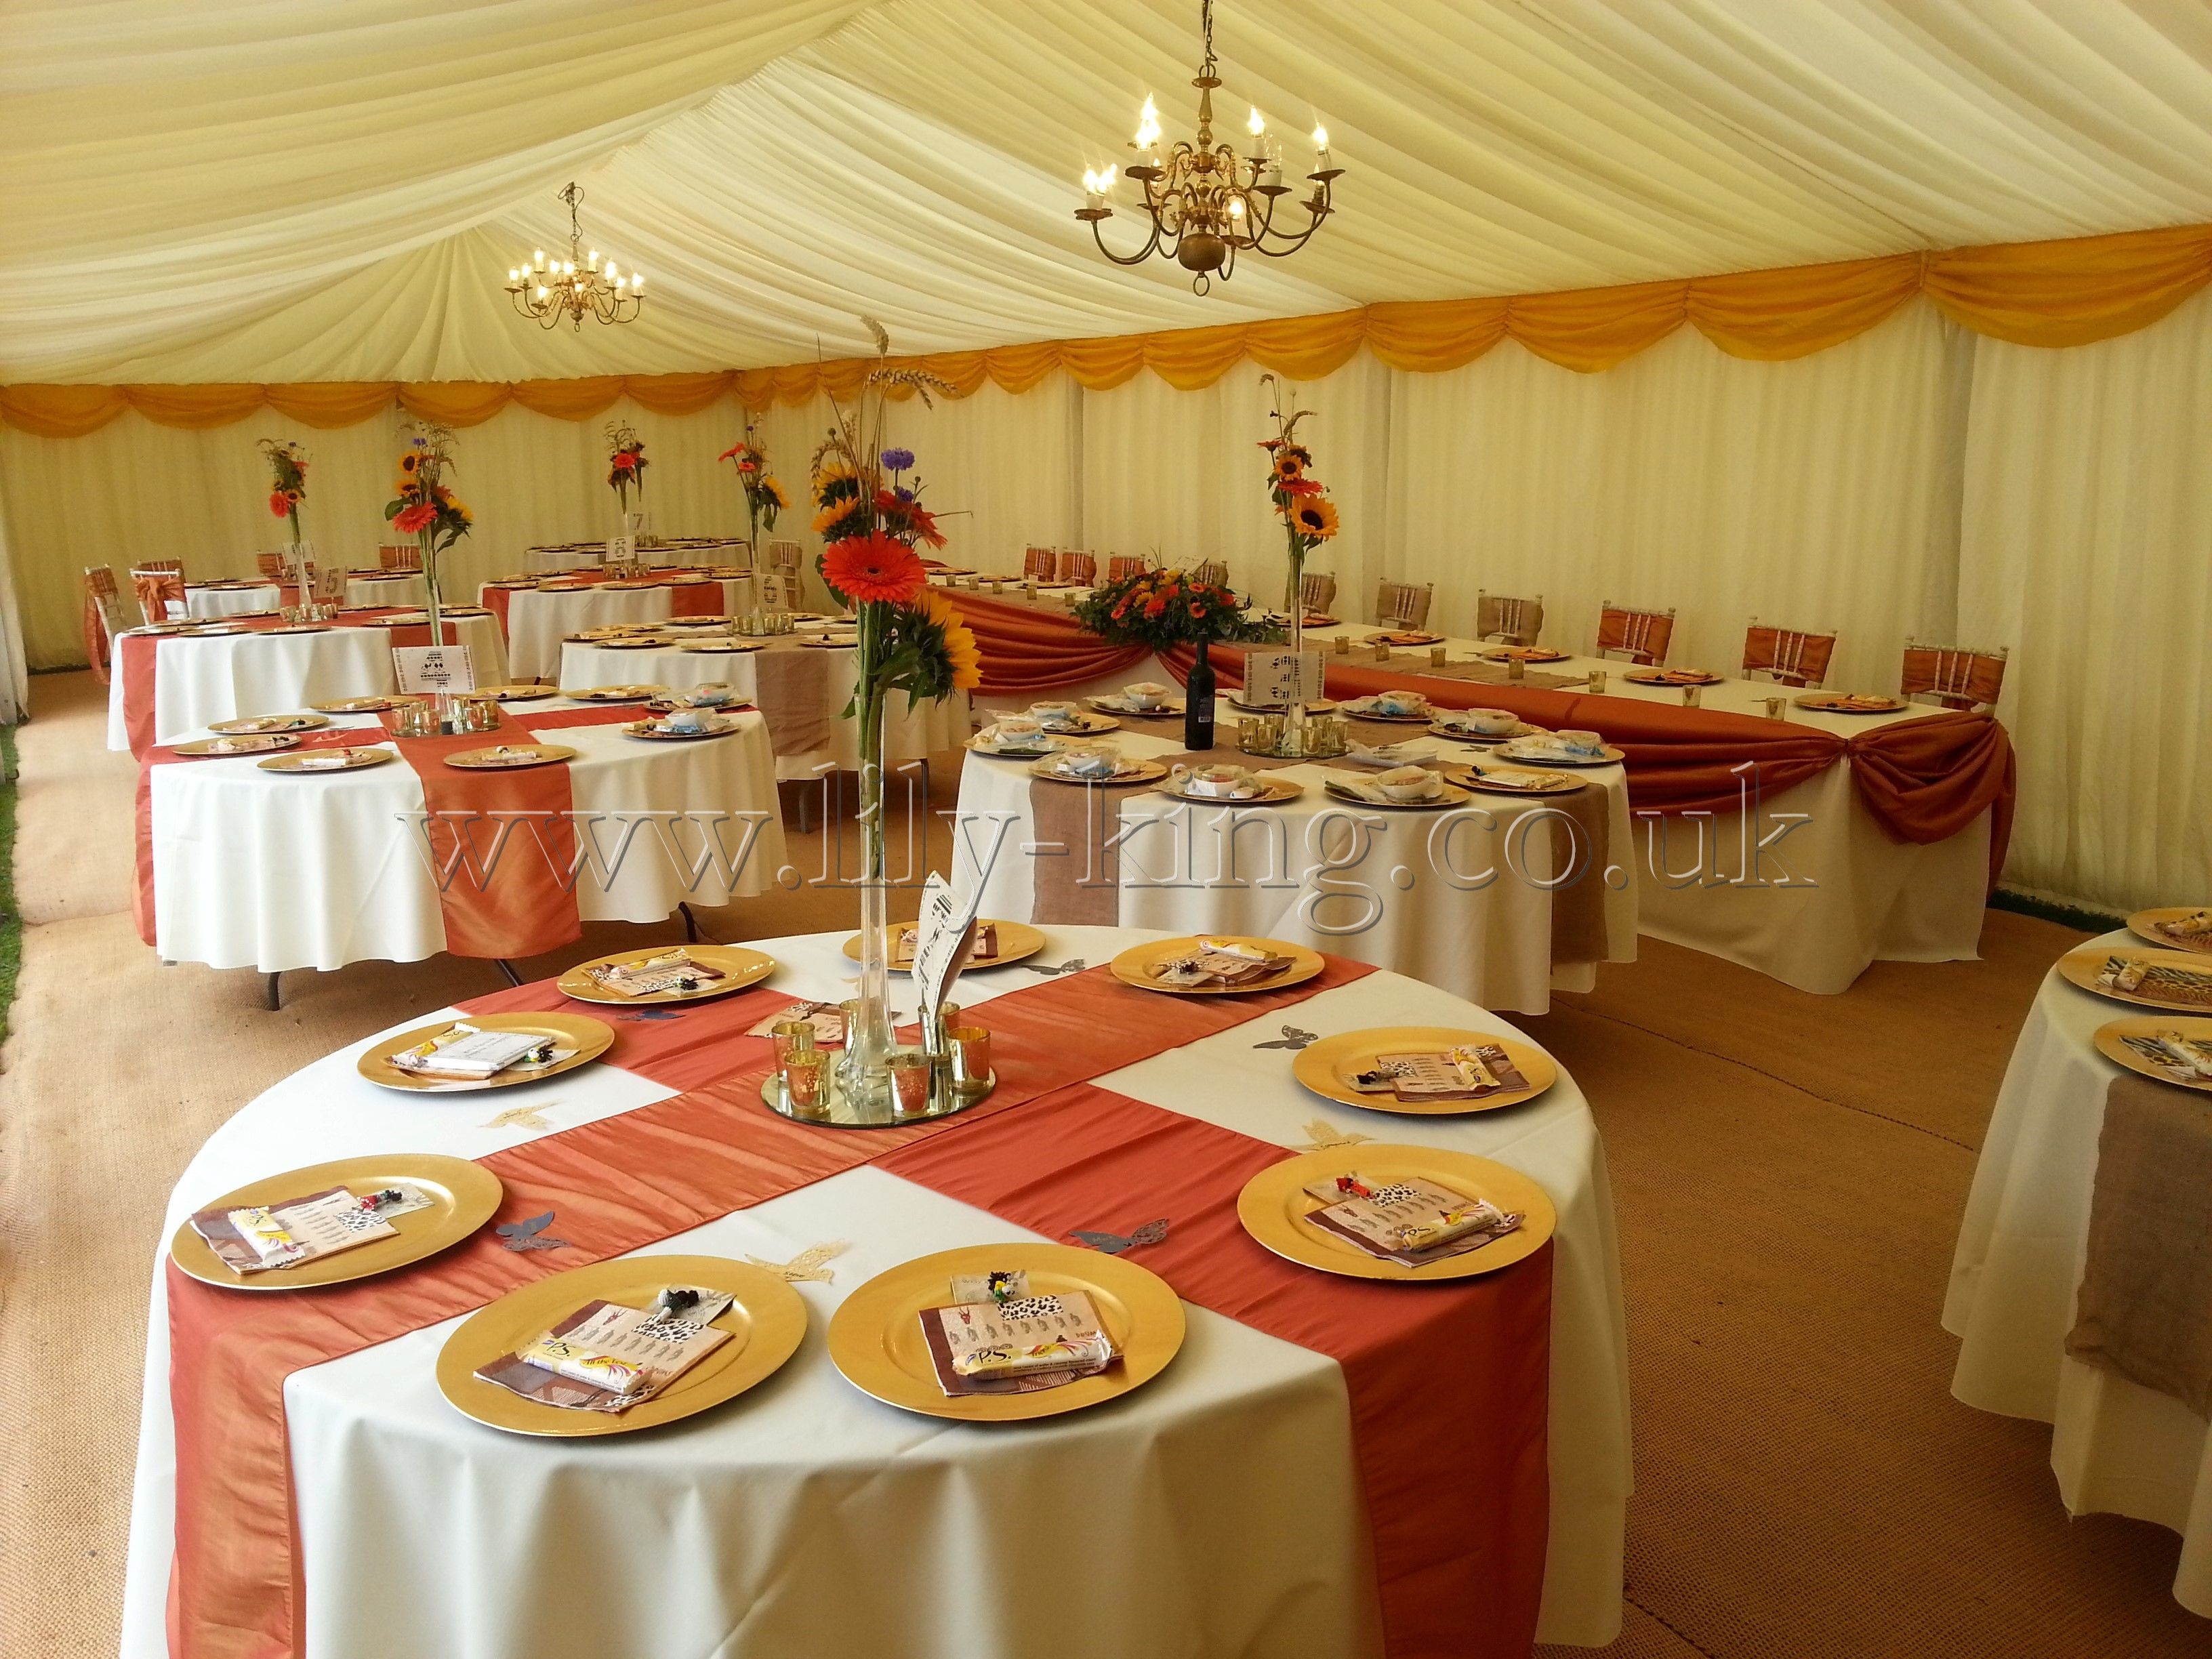 Burnt Orange Table Runners In A Cross Design By Lily King Weddings